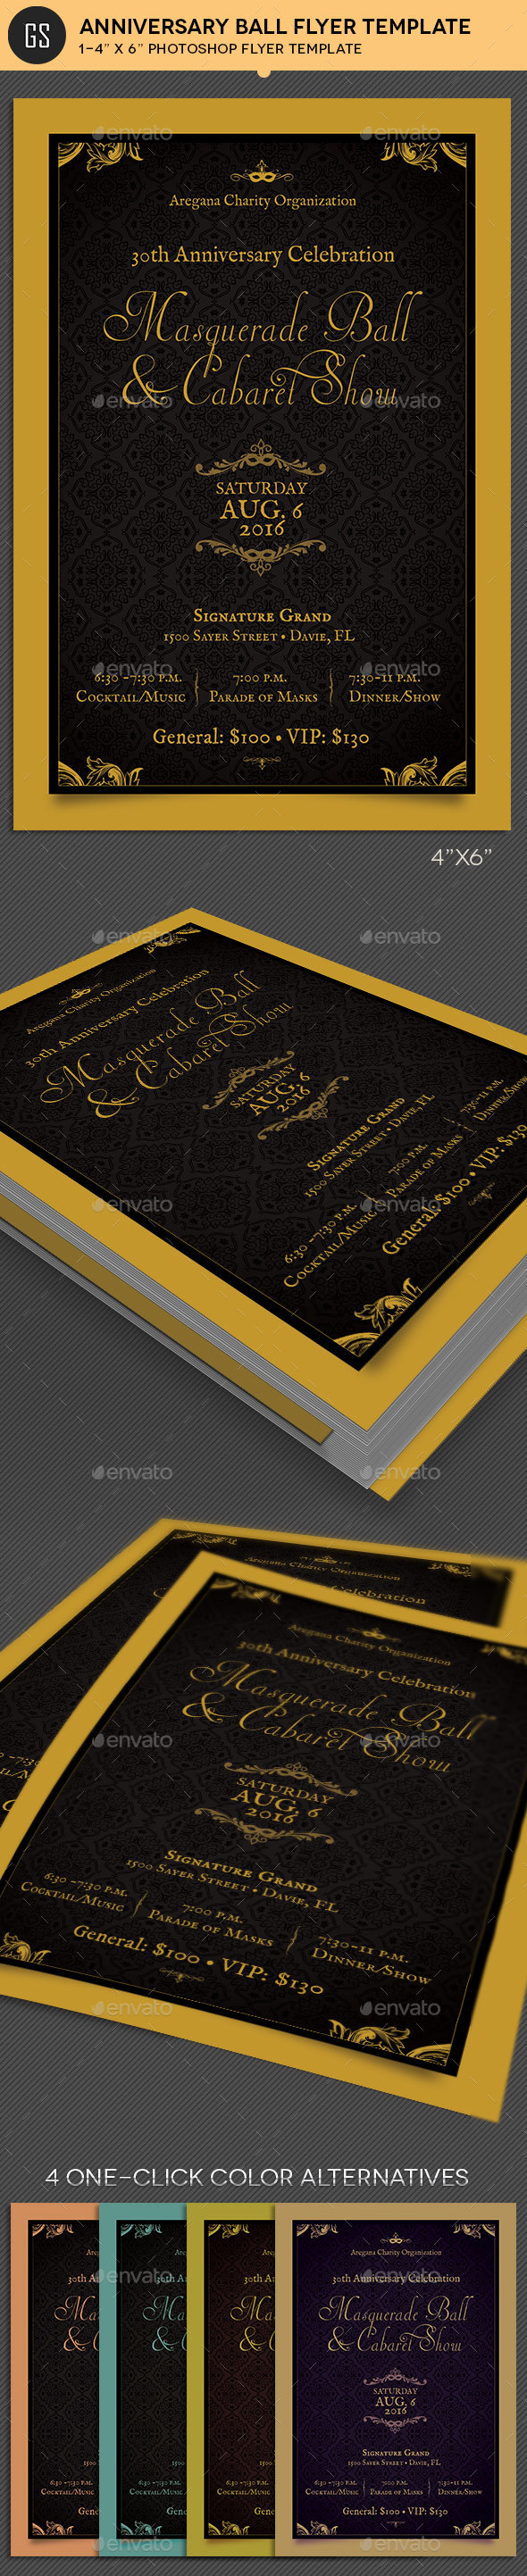 Anniversary Ball Flyer Template by Godserv | GraphicRiver